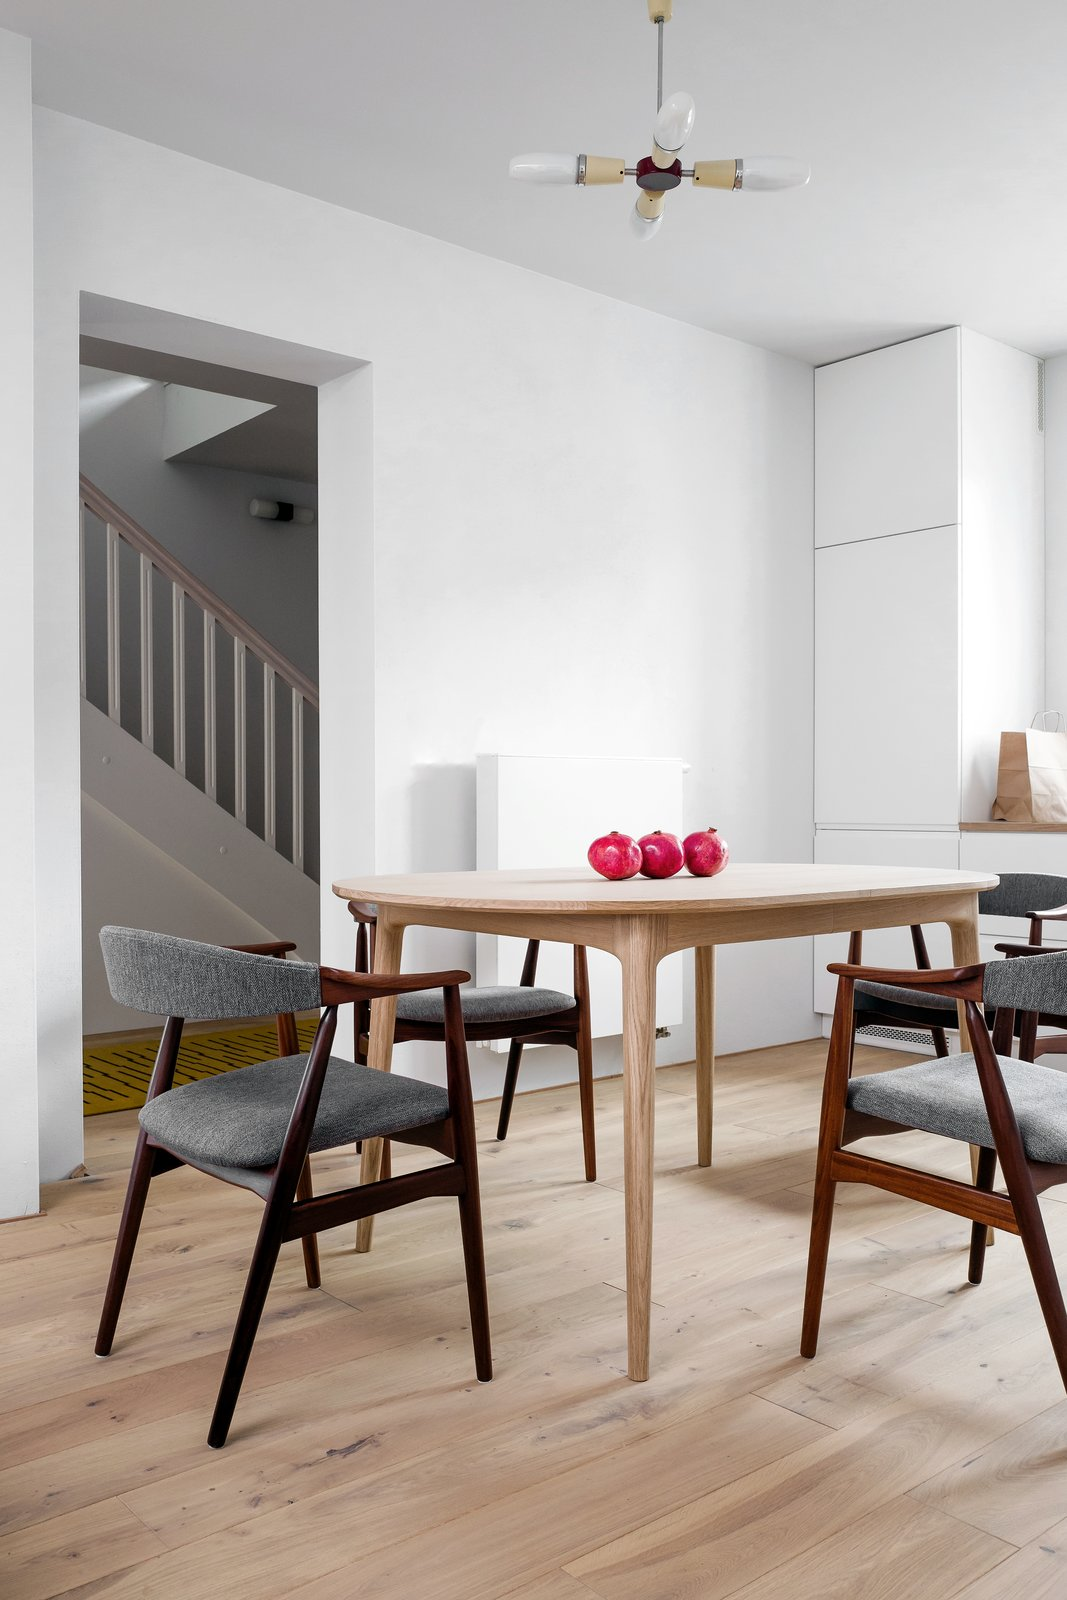 Dining Room, Table, Chair, and Pendant Lighting  Photo 6 of 12 in A Family's Loft in Poland Gets a Minimalist Renovation That's Both Elegant and Functional